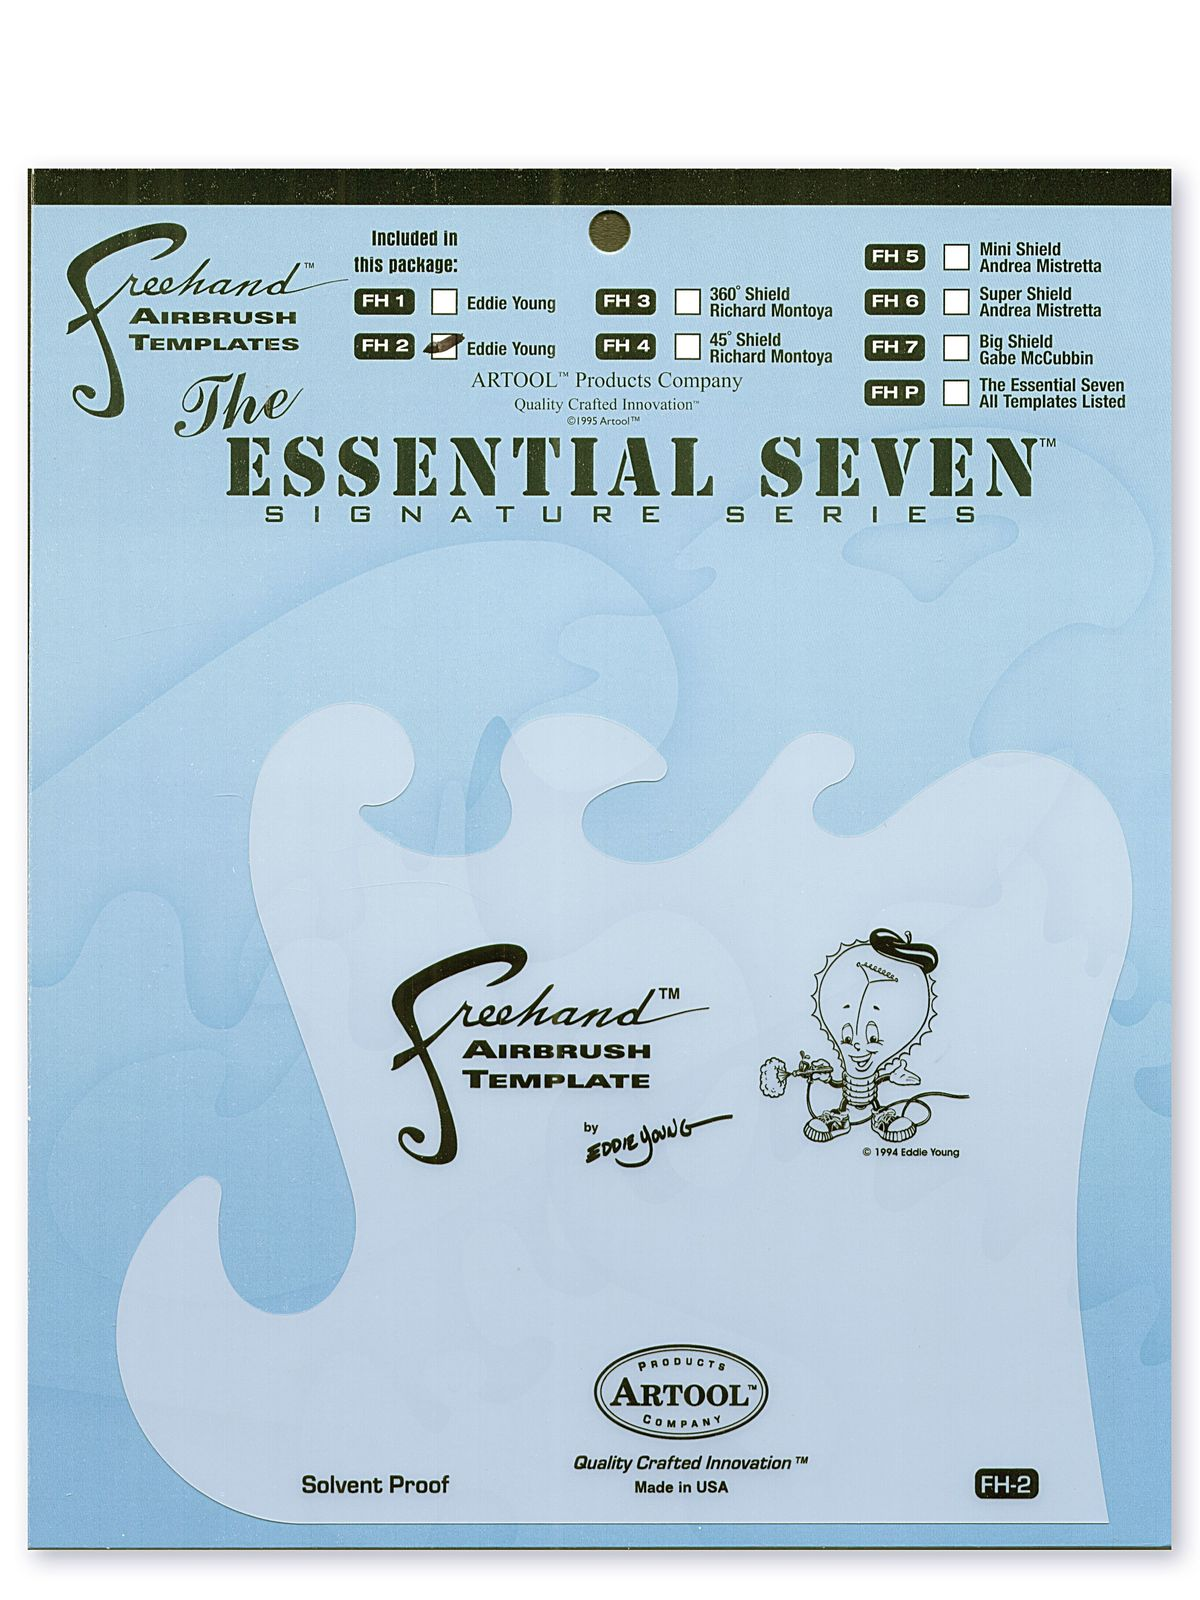 Freehand Airbrush Templates by Eddie Young